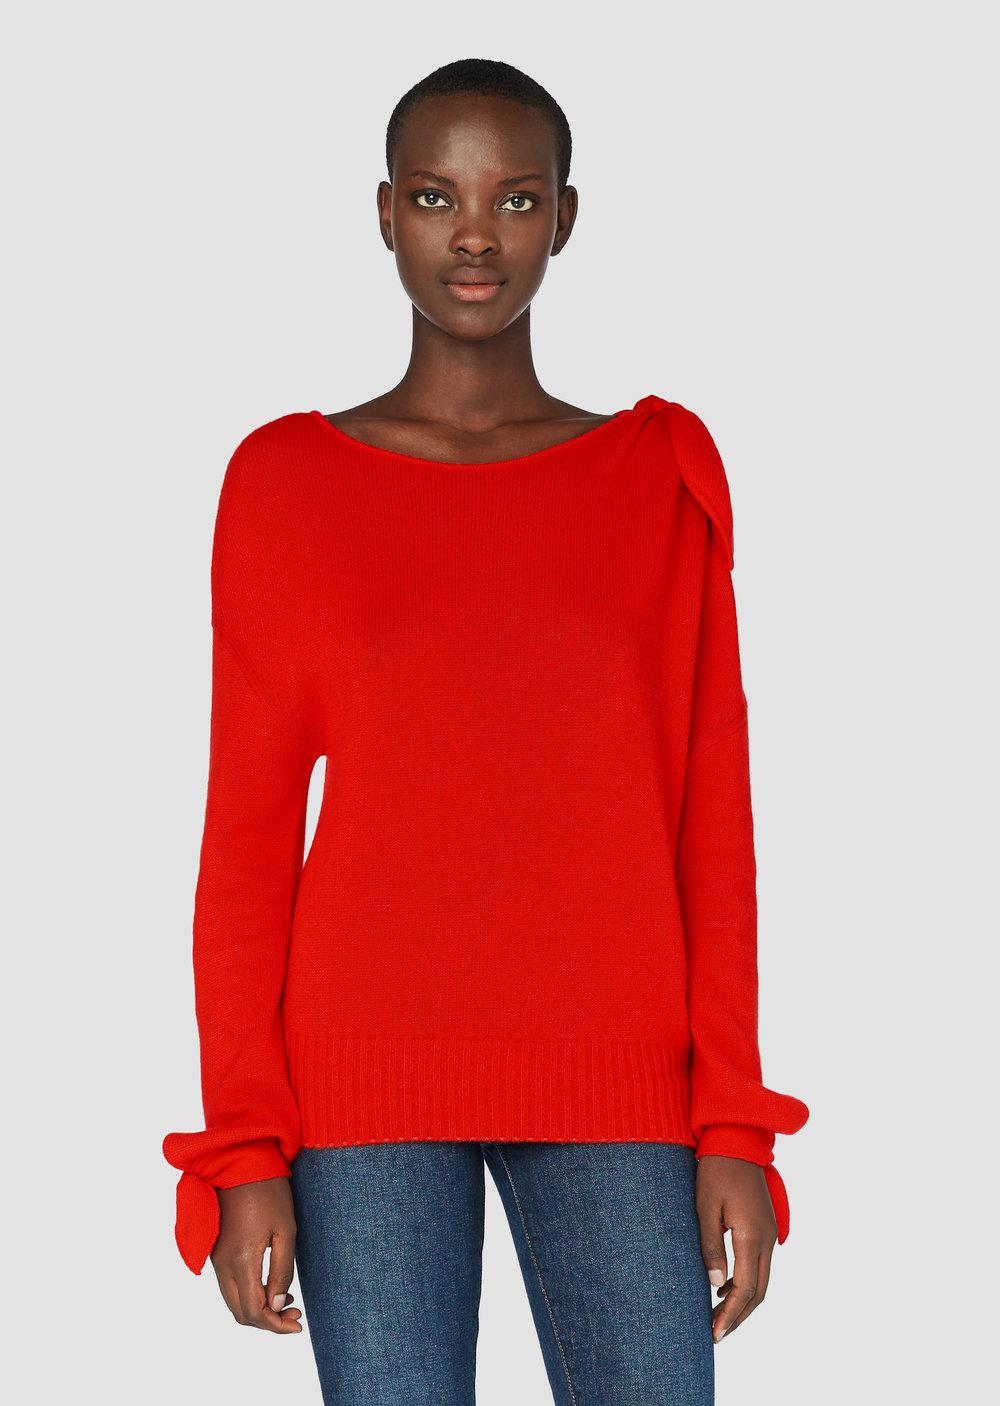 Derek lam Sweater With Tie Detail in Red | Lyst